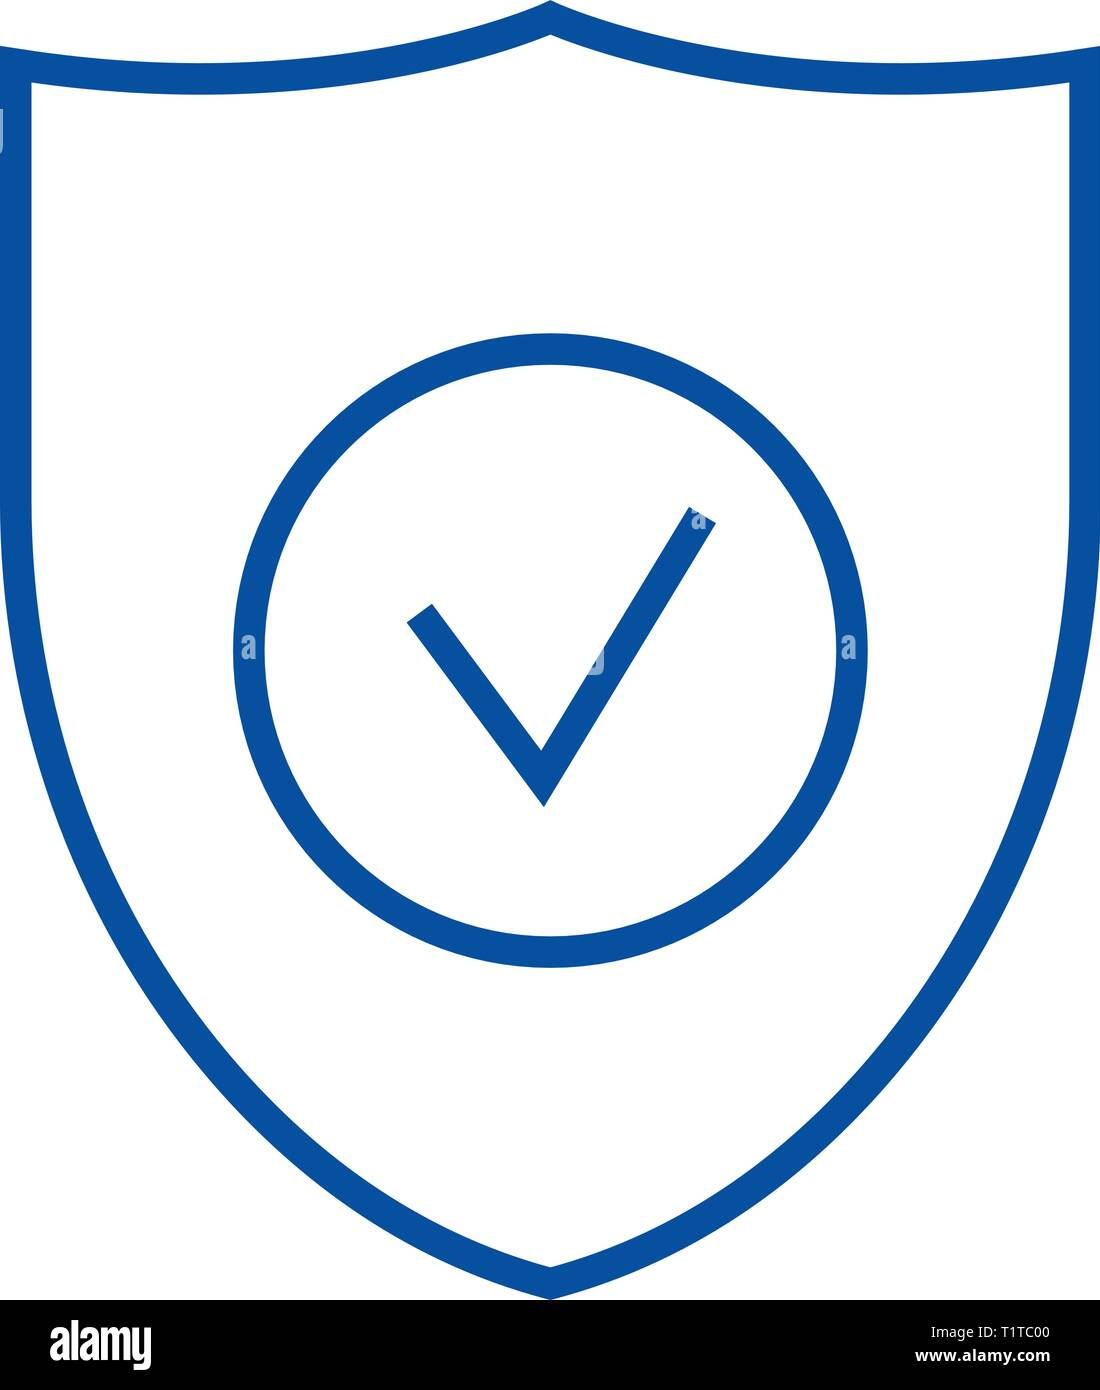 Secure shield line icon concept. Secure shield flat  vector symbol, sign, outline illustration. - Stock Vector